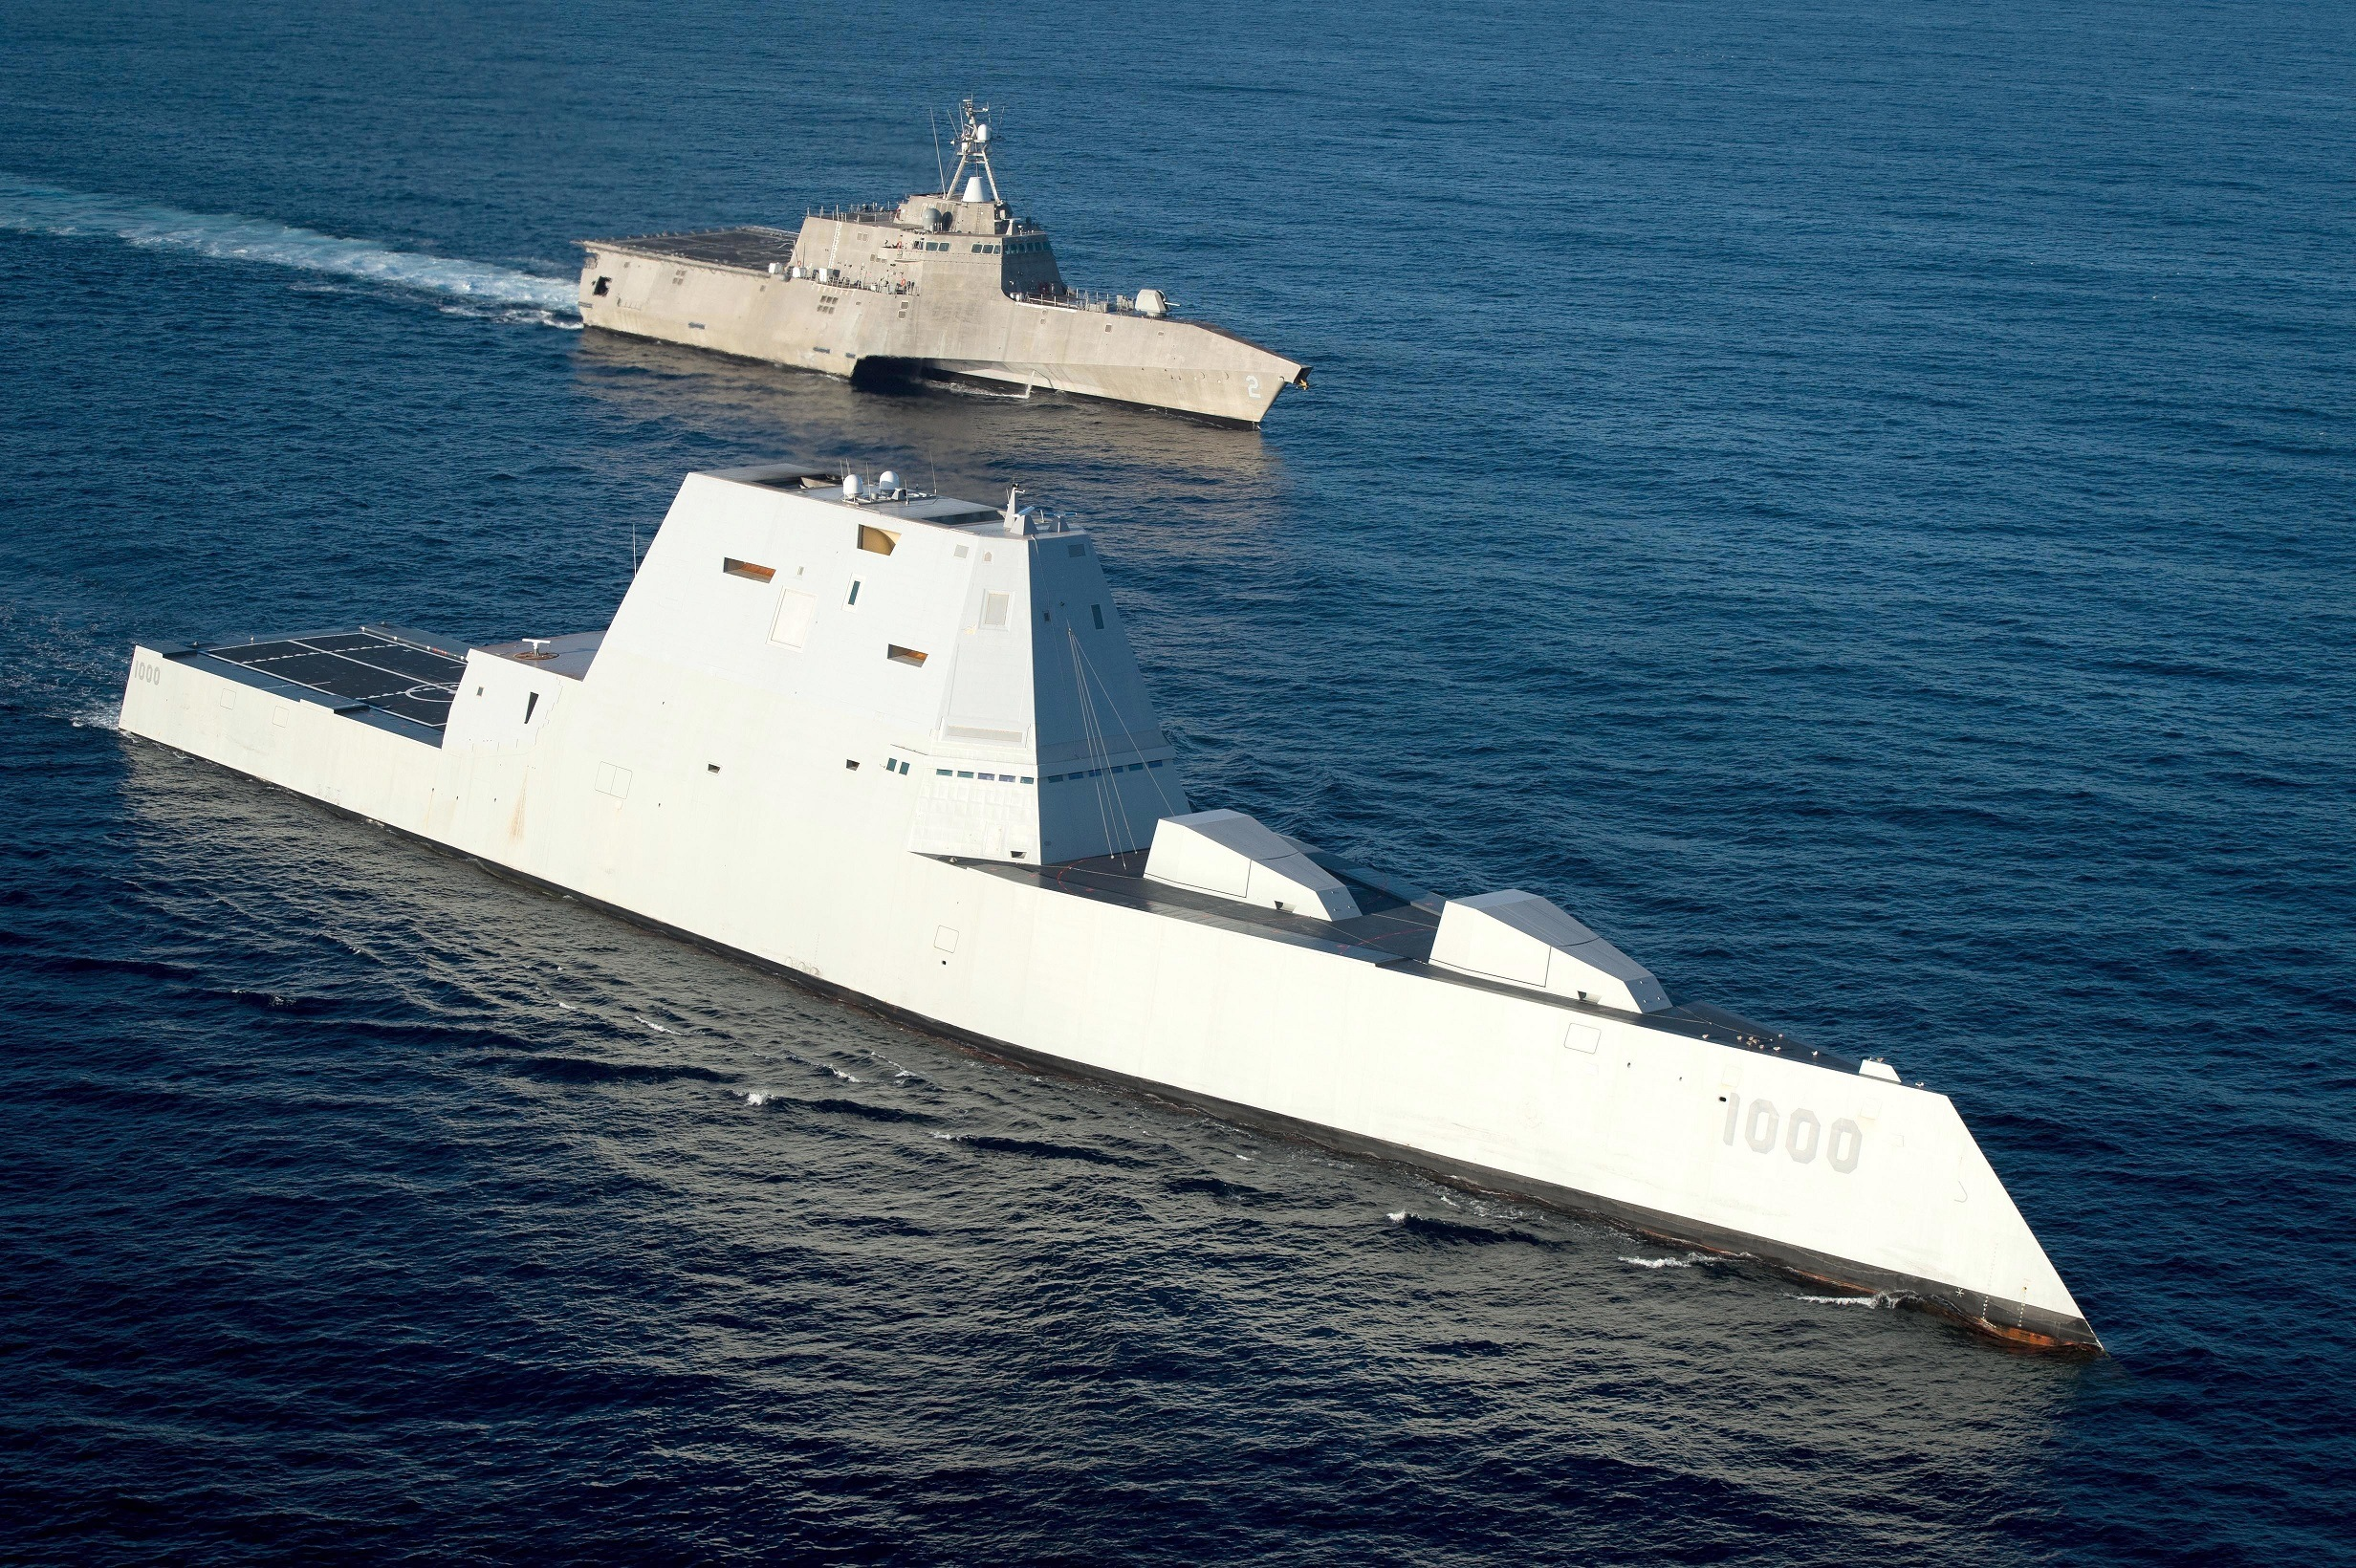 USS Zumwalt is on the final leg of its three-month journey to its new homeport in San Diego.